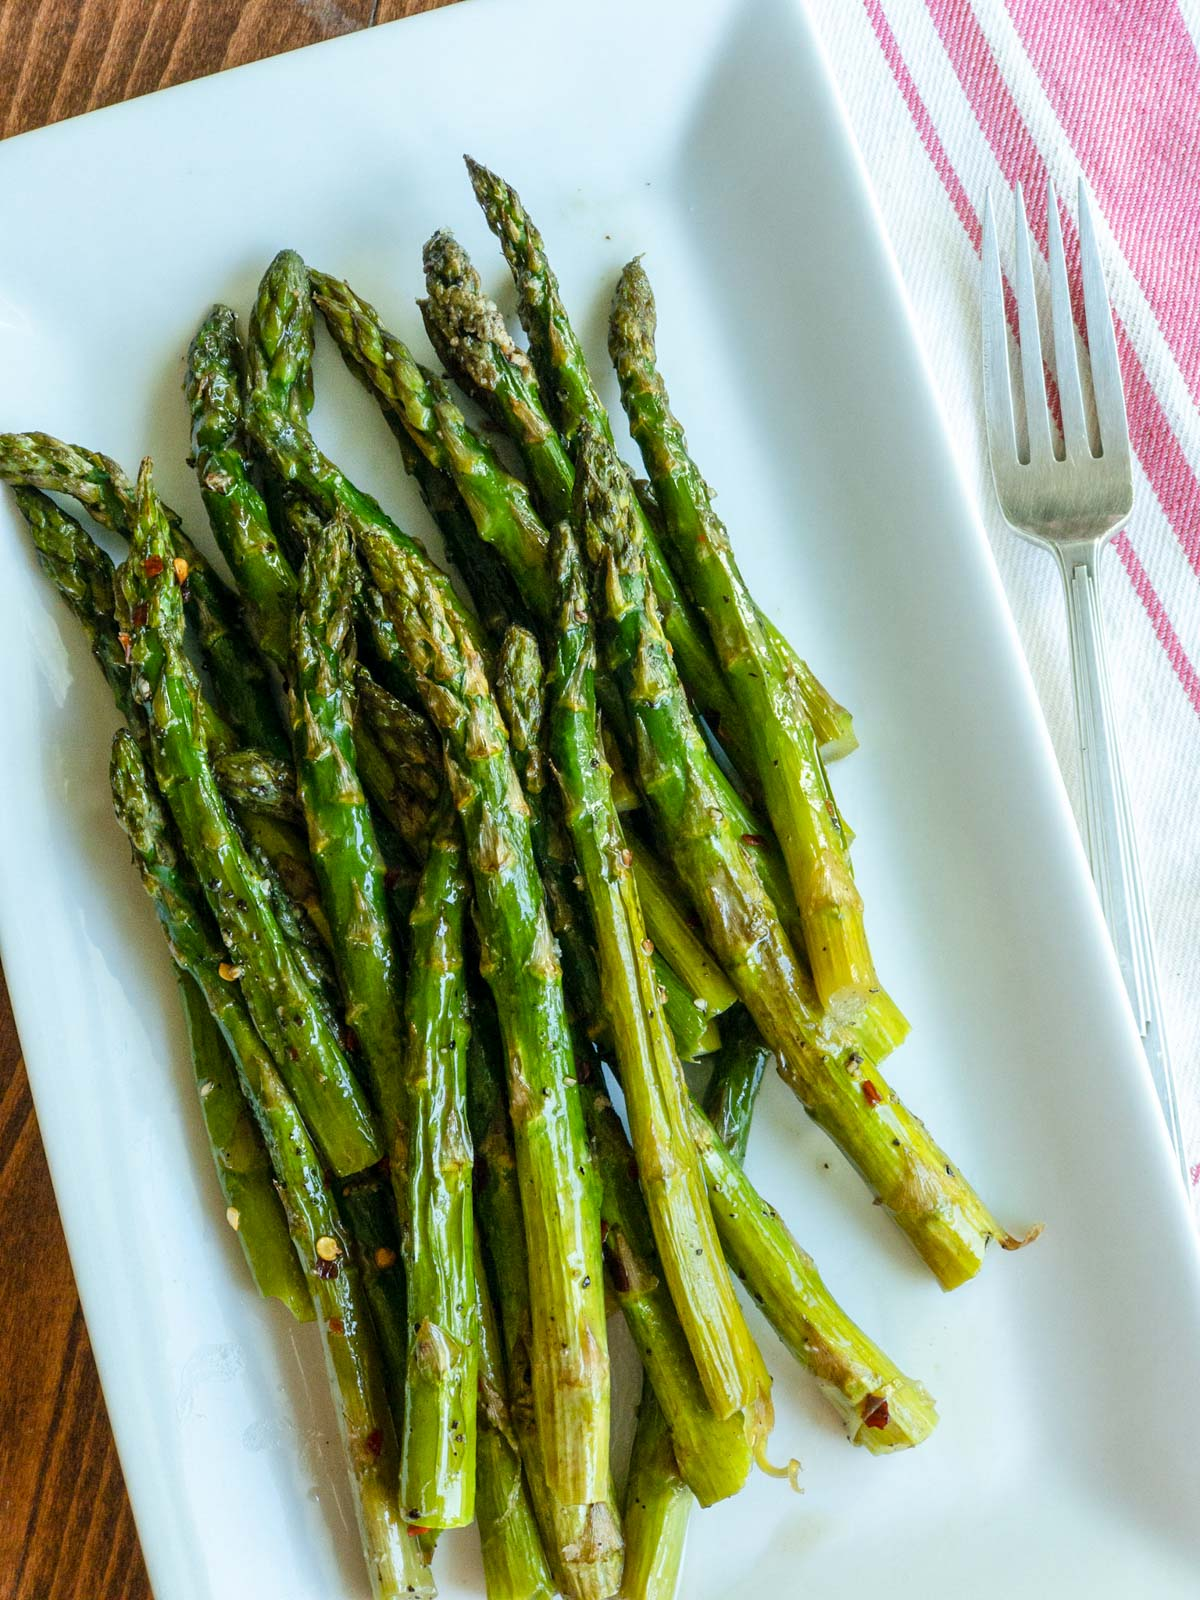 Roasted asparagus on white rectangle dish with a fork next to it